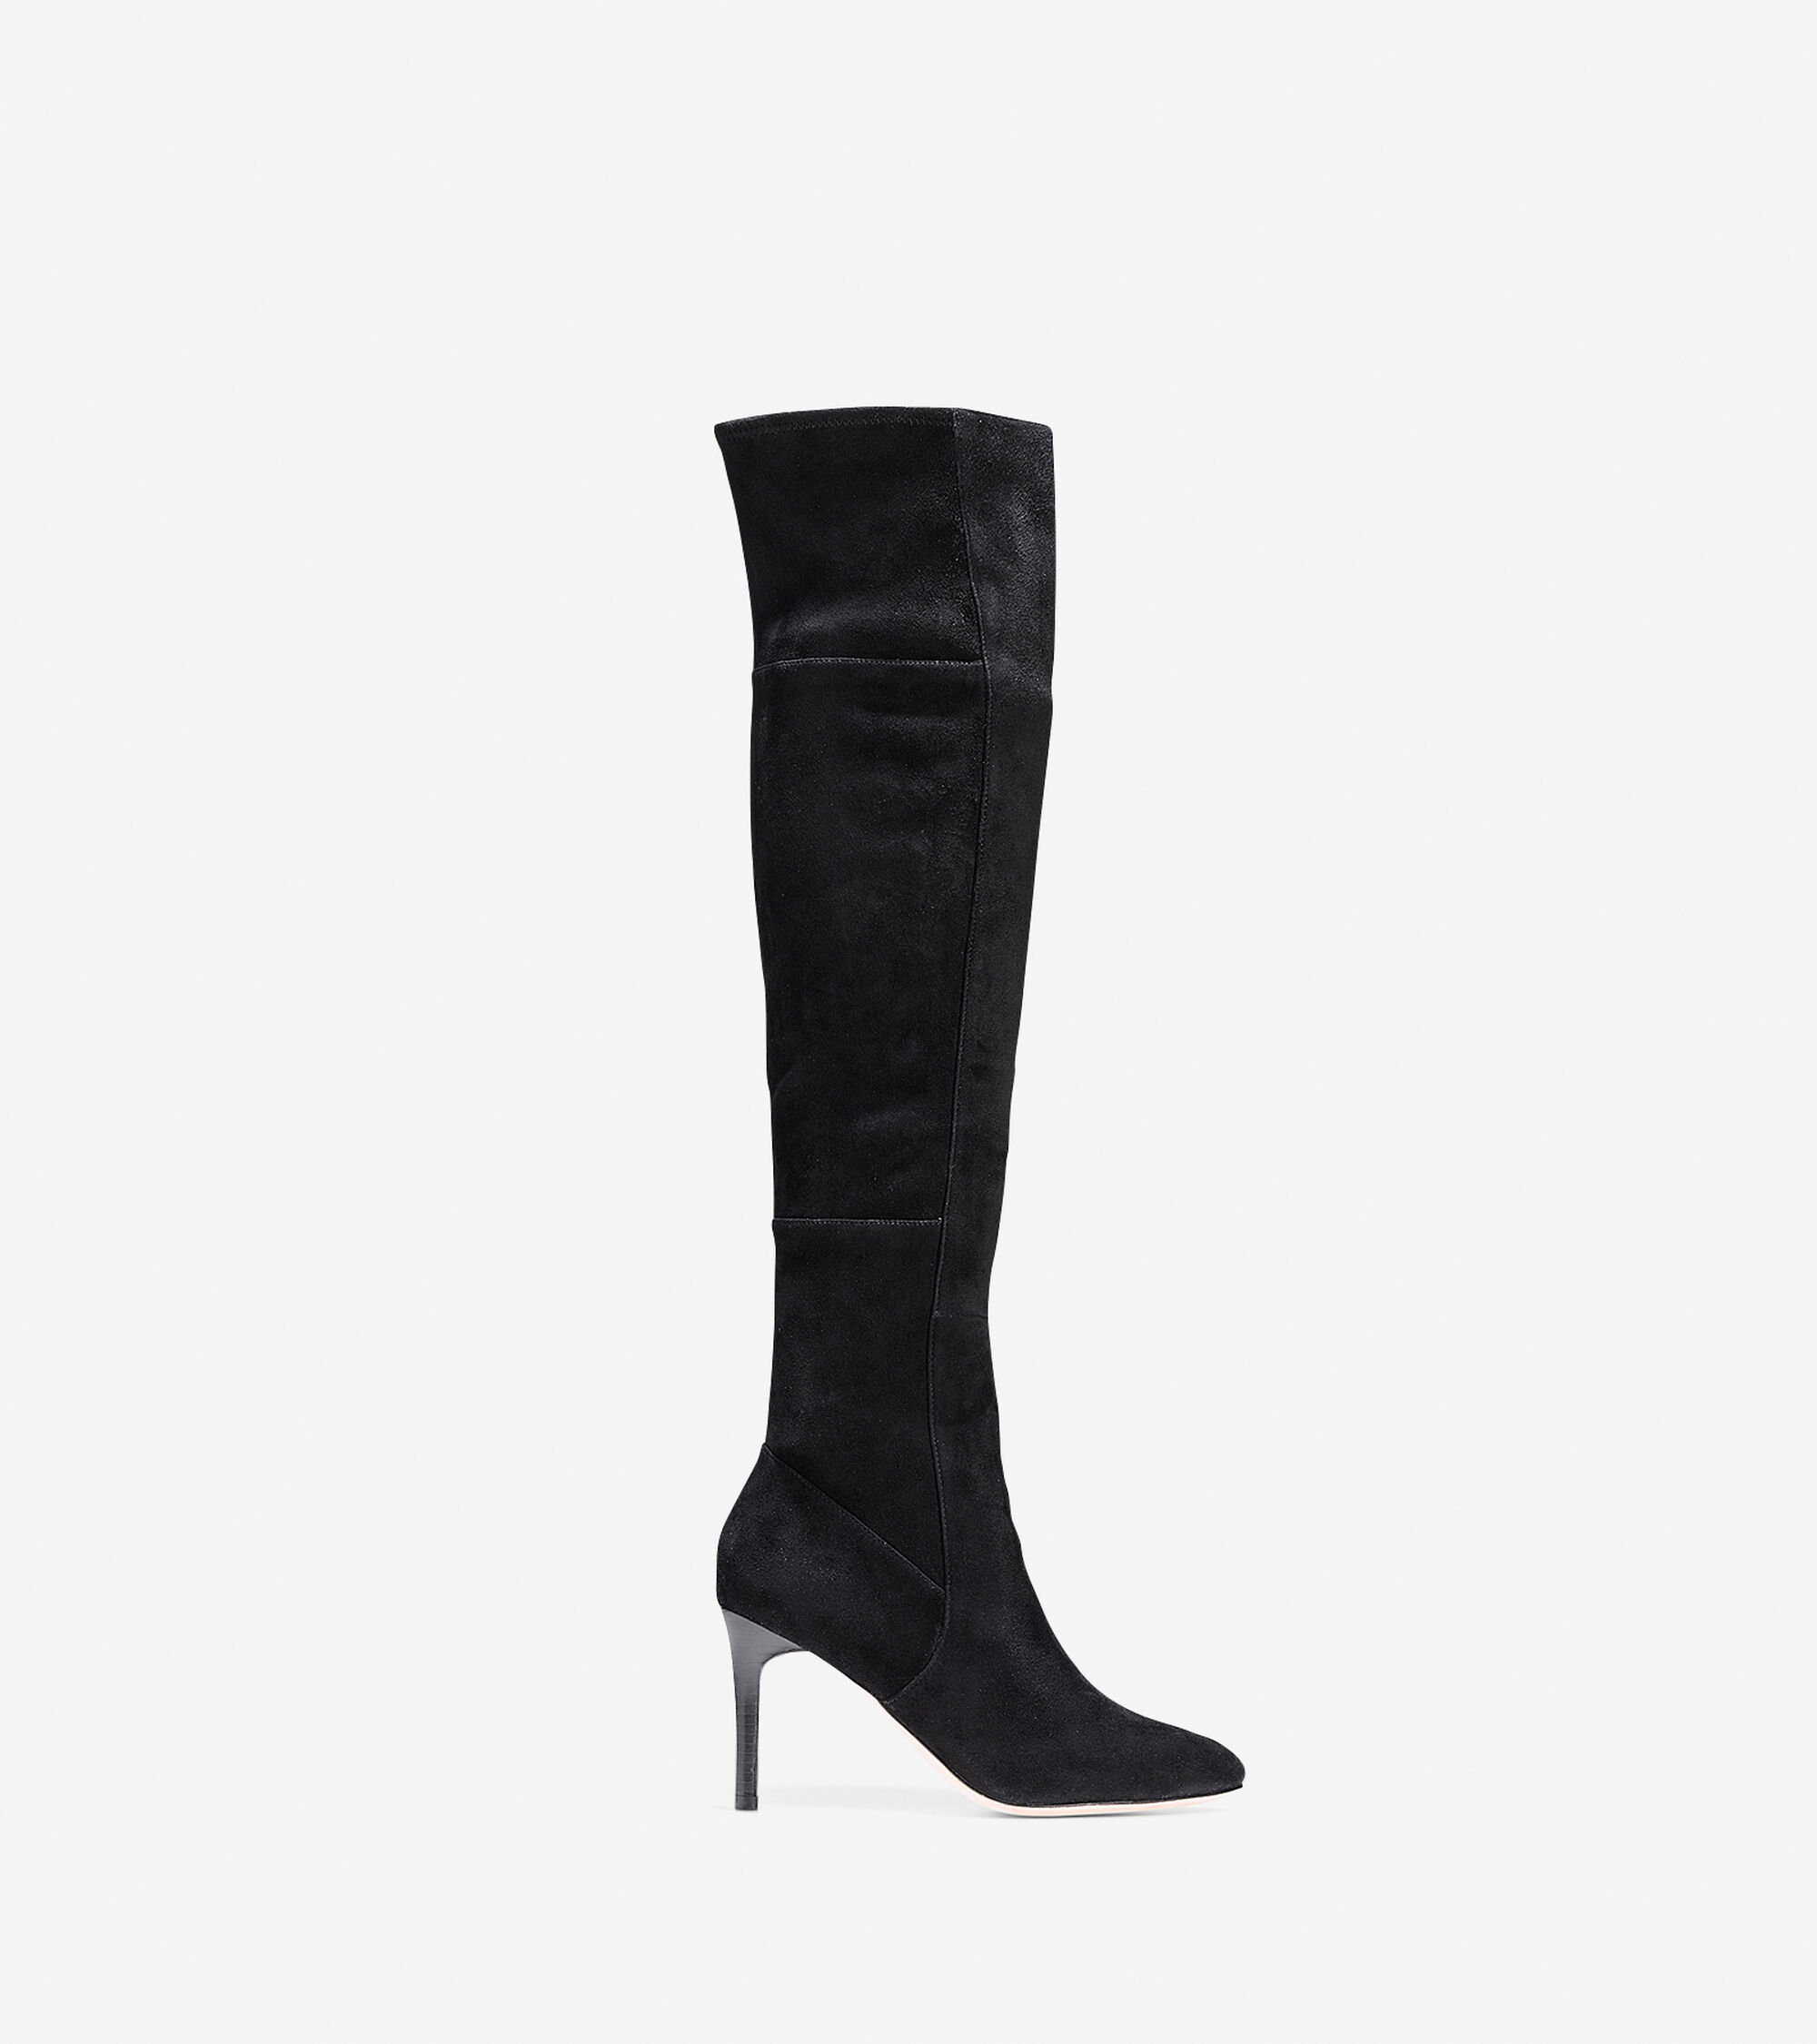 0c24fafc672 Marina Over-the-Knee Boots 85mm in Black